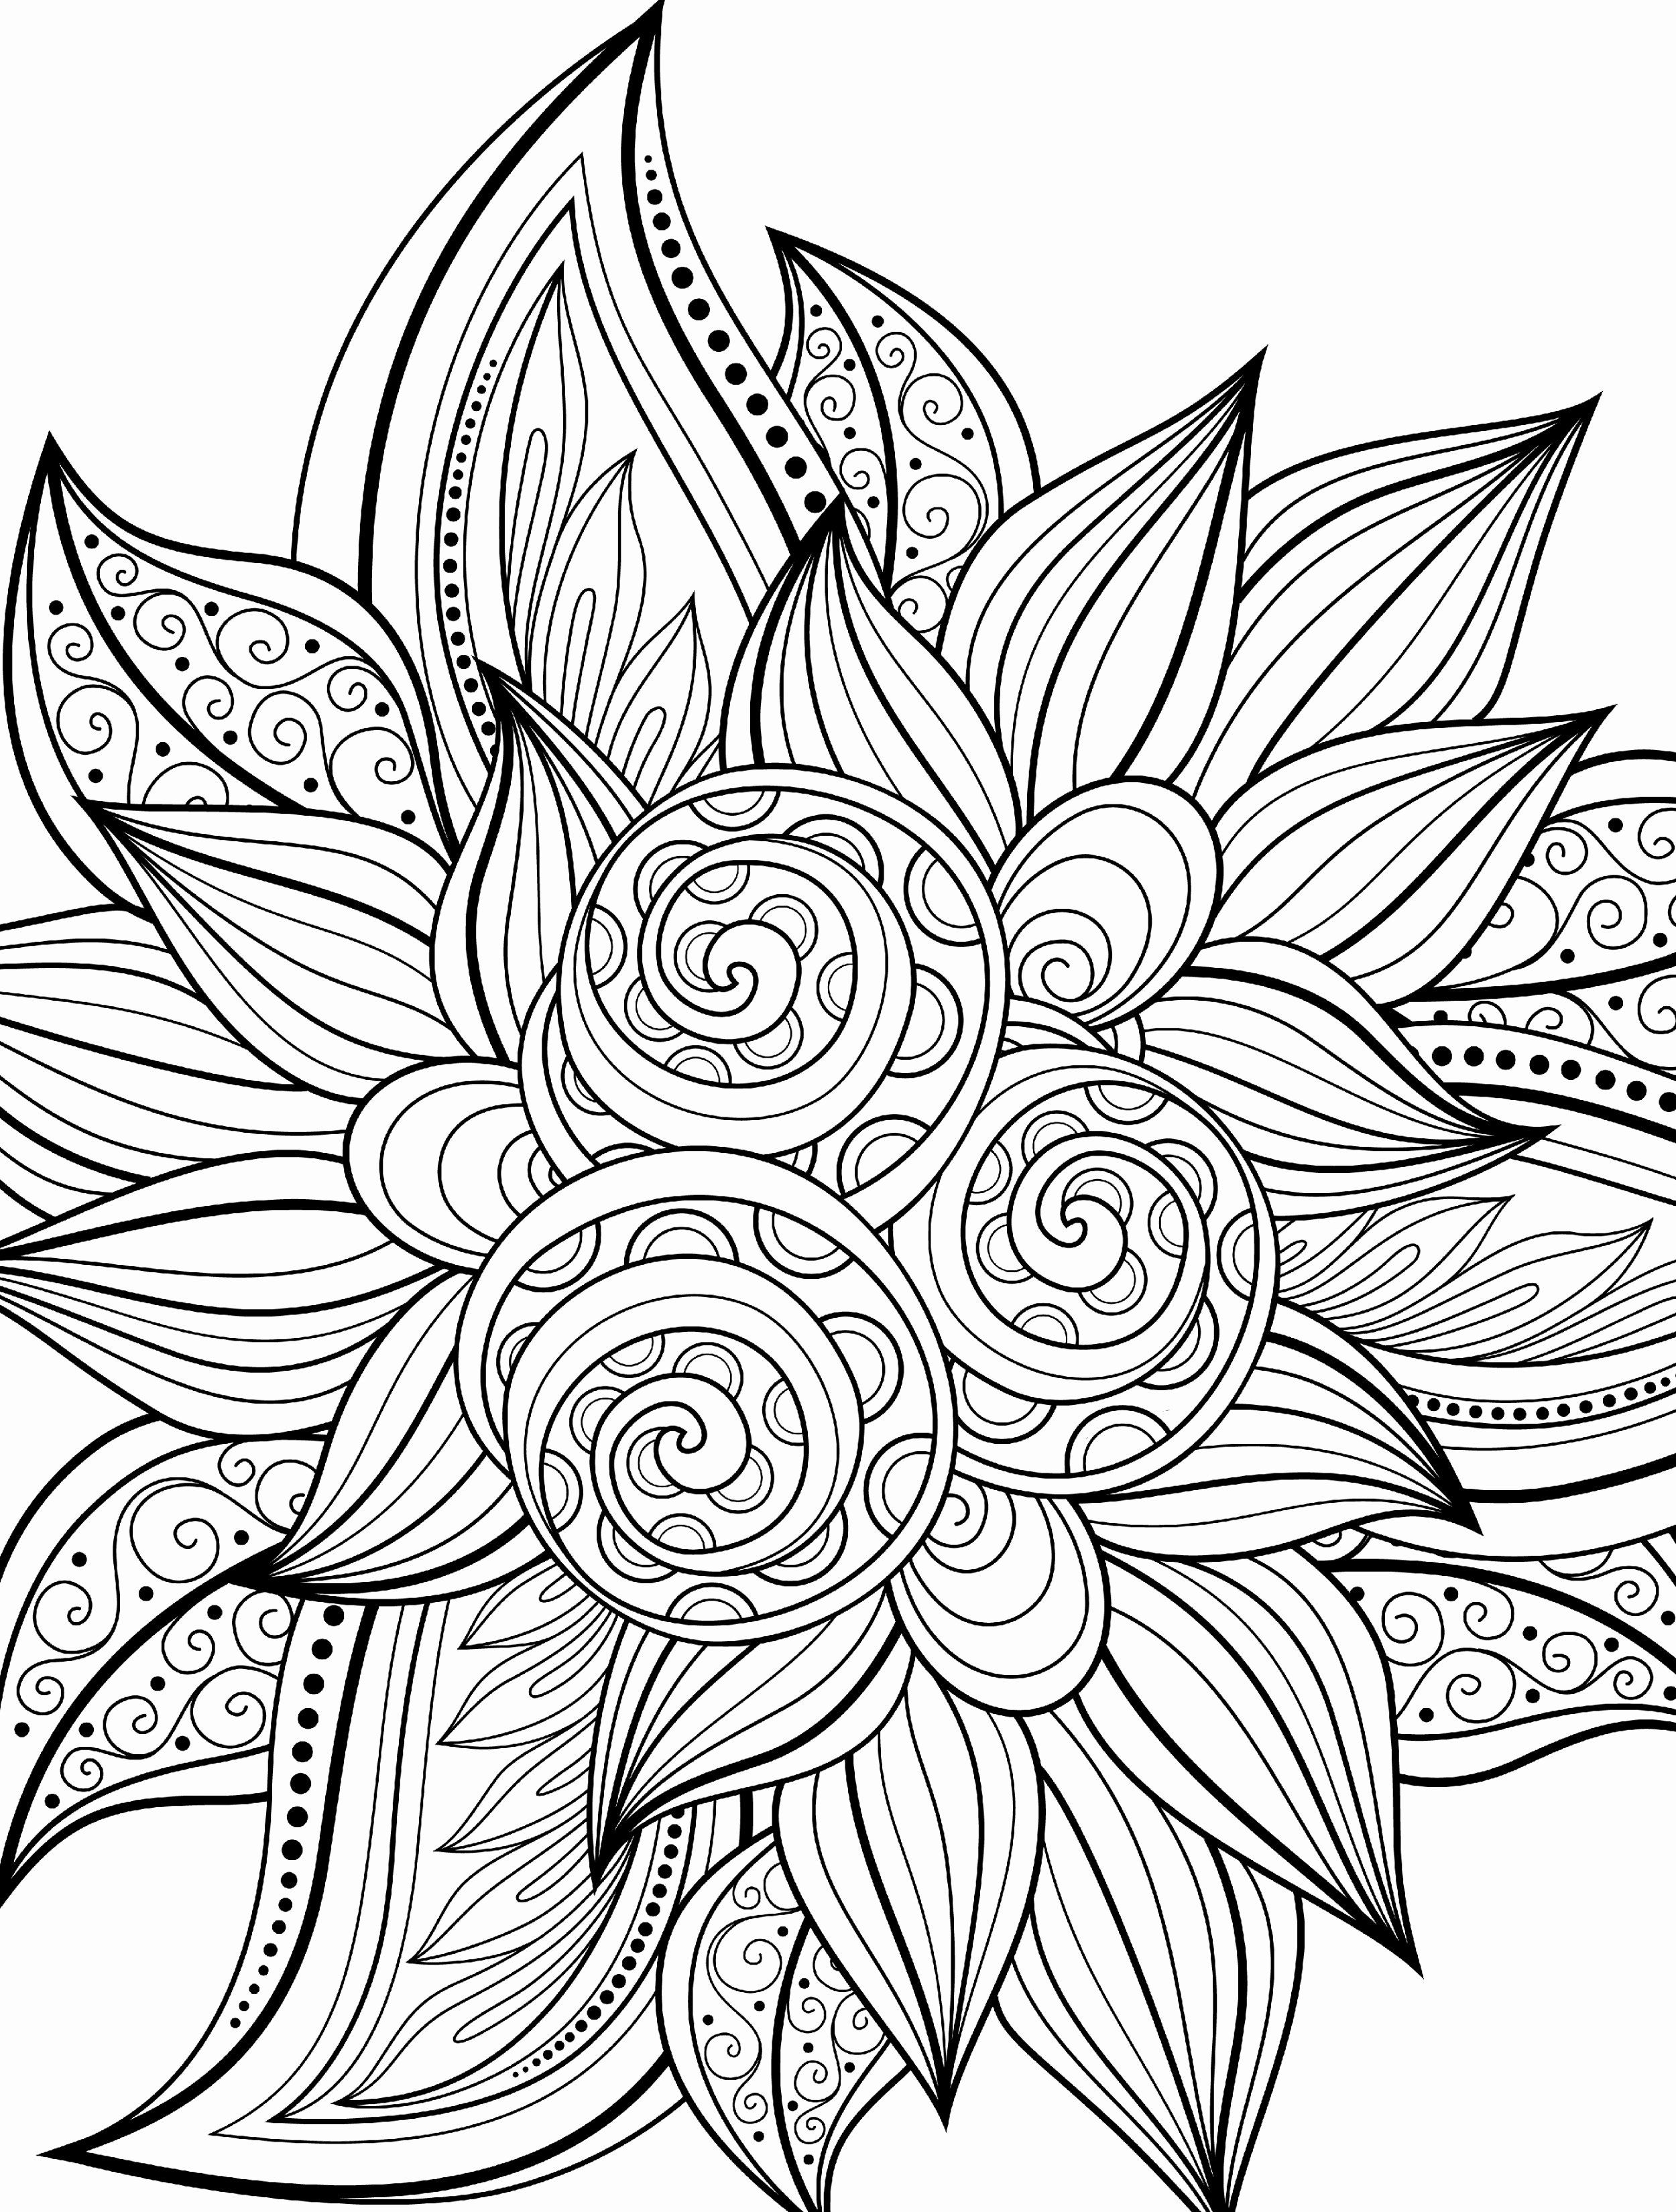 Coloring Pages Adults Easy Free Adult Coloring Pages Flower